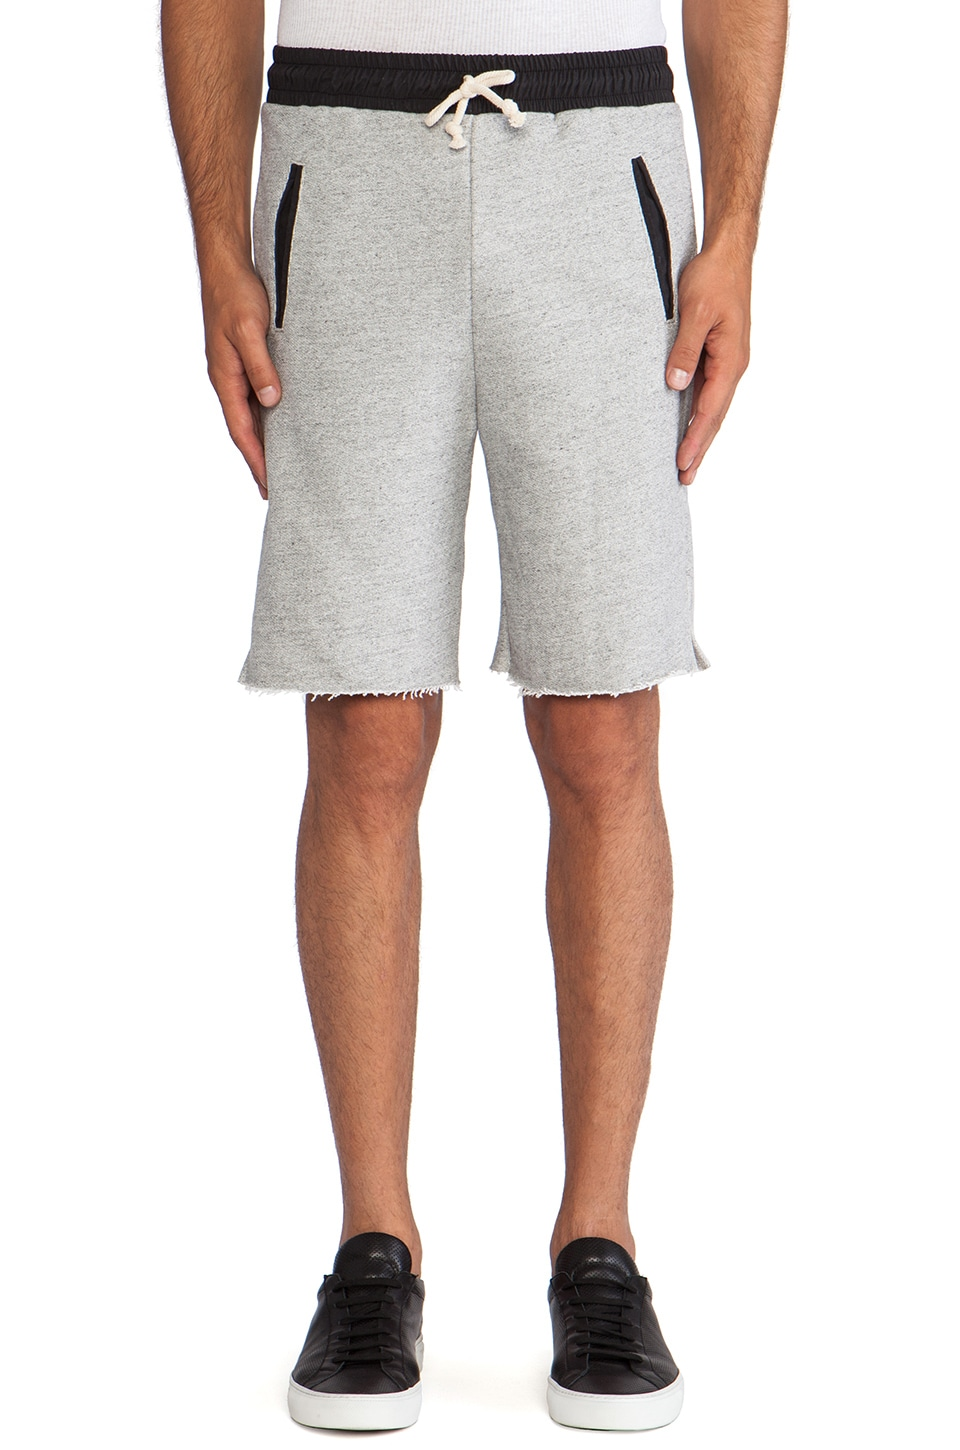 JOHN ELLIOTT Lima Short in Grey Duo 2